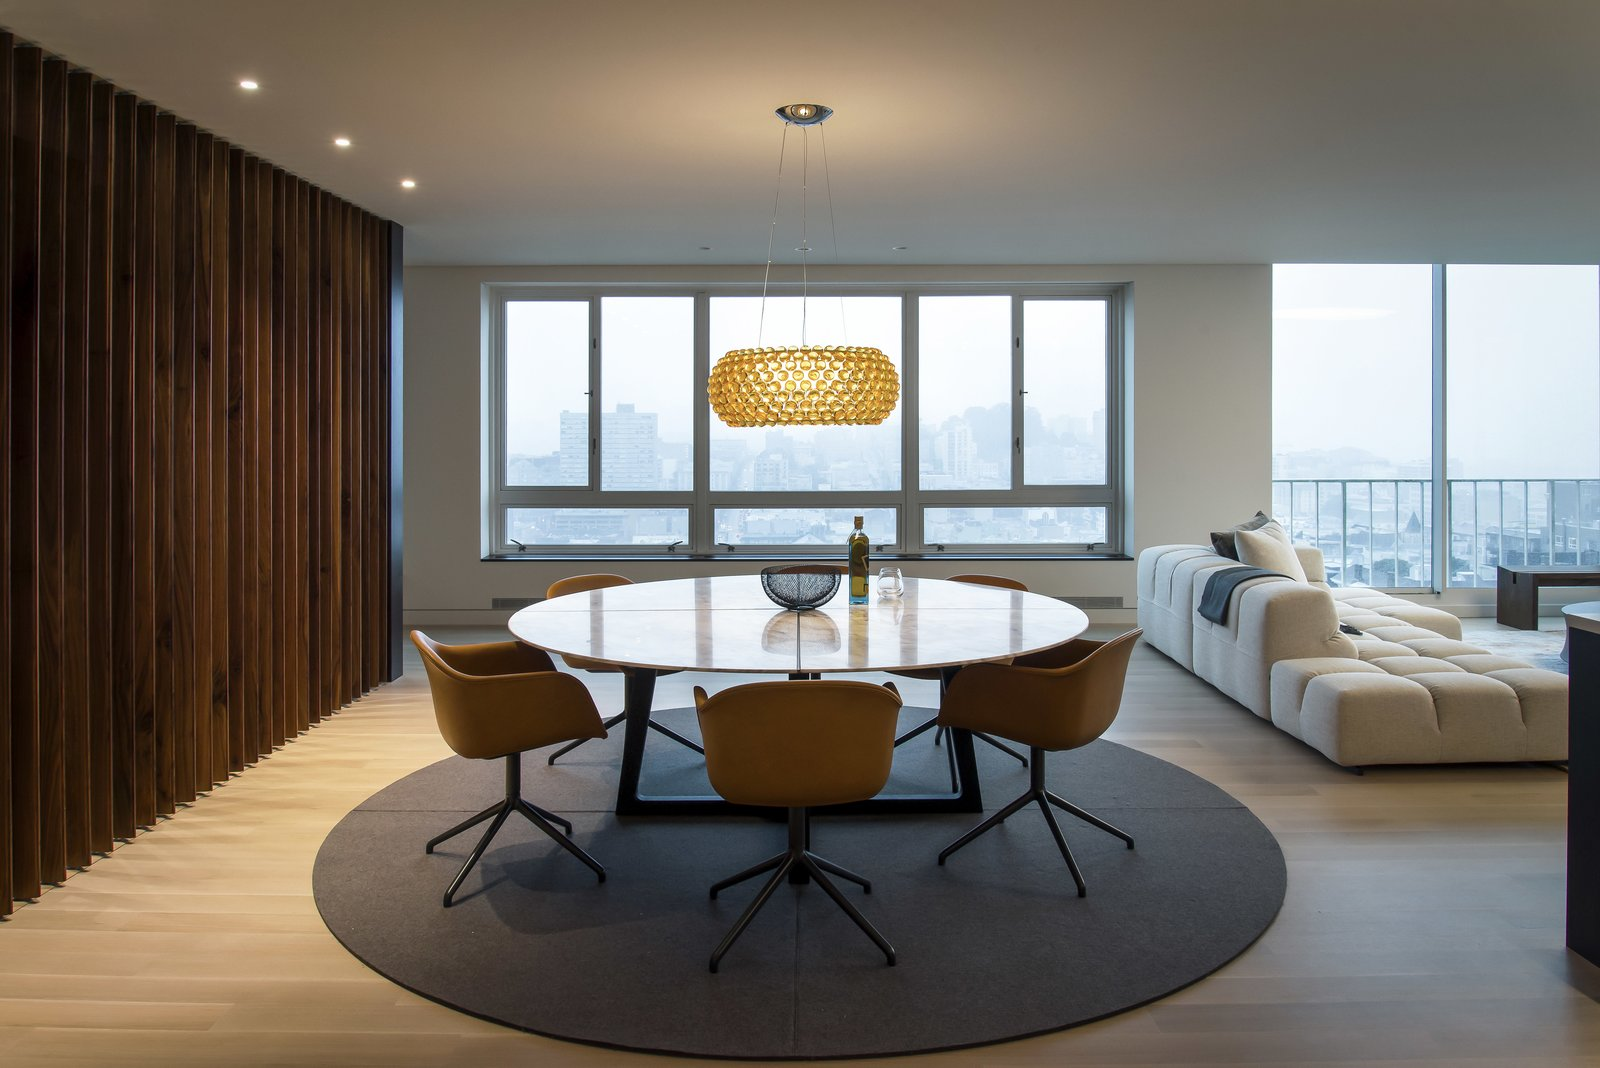 Dining Room - San Francisco Fog  Nob Hill Residence by Imbue Design